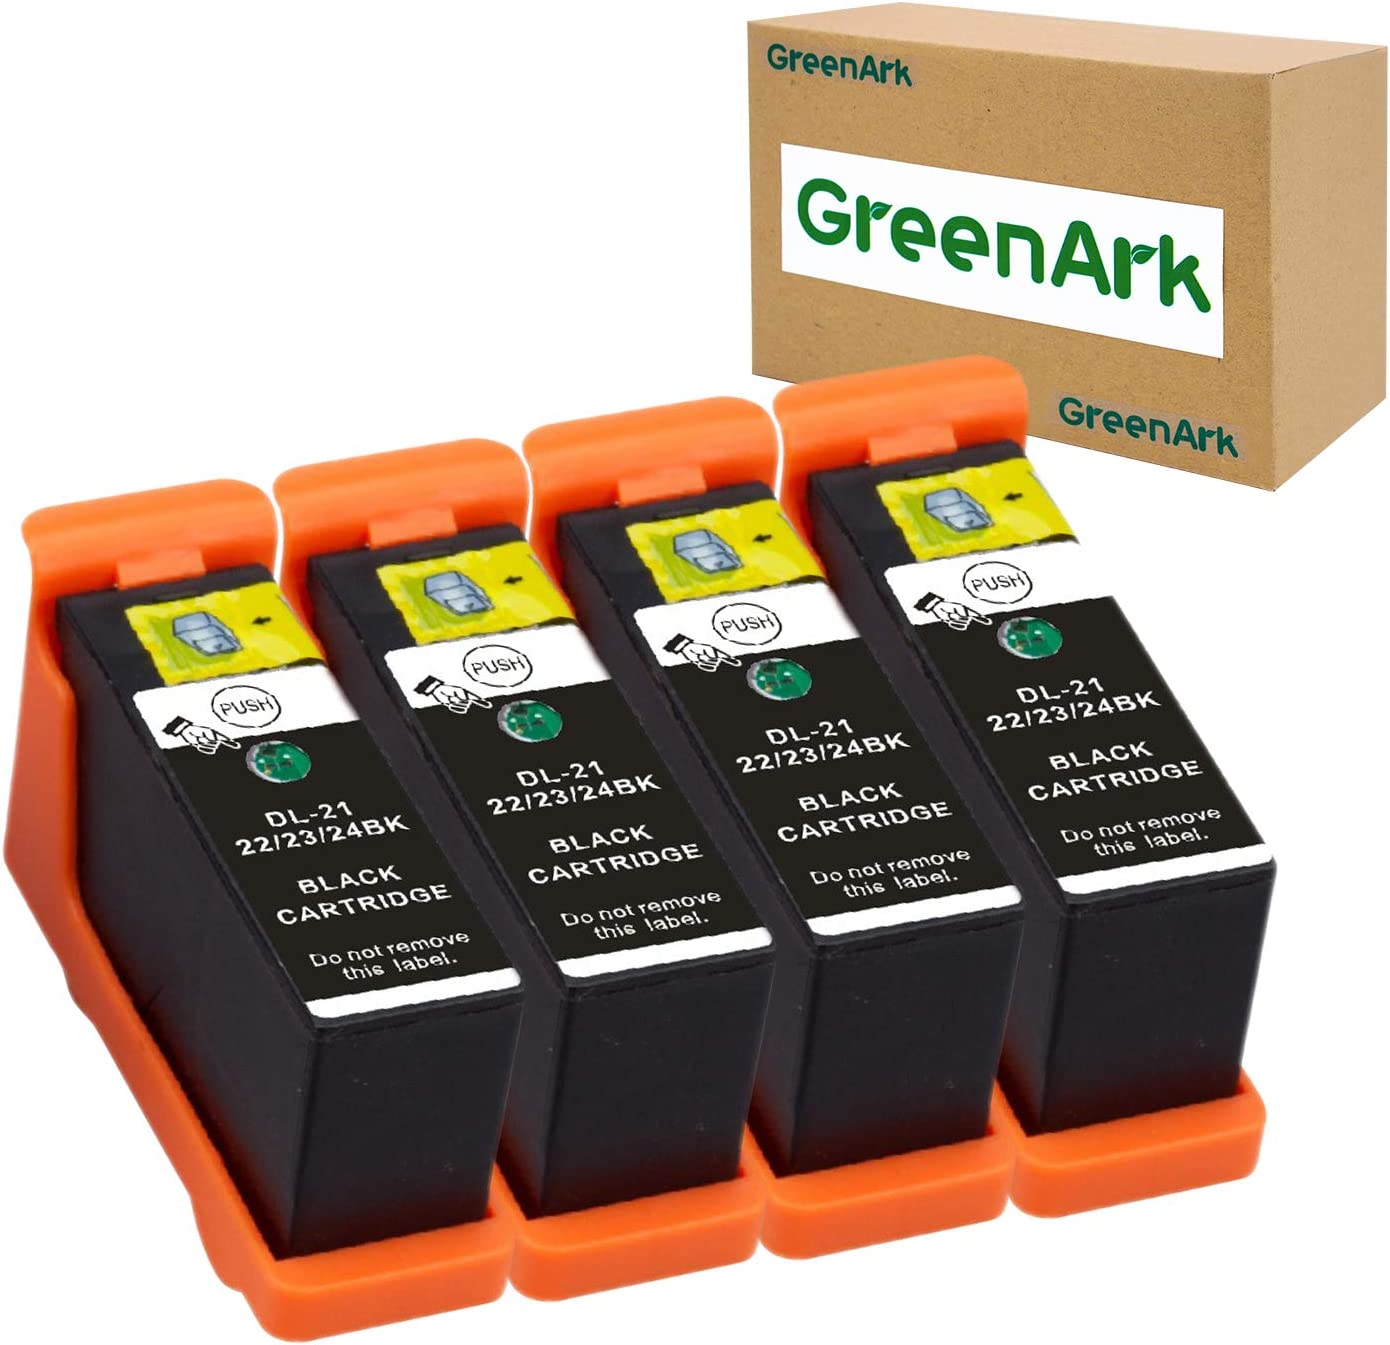 GREENARK Compatible for Dell Series 21 Black Ink Cartridges Use for Dell V313w V515w P513w V715w P713w Printers 4 Pack Black for Dell Series 21, Series 22, Series 23, Series 24 Ink Cartridges